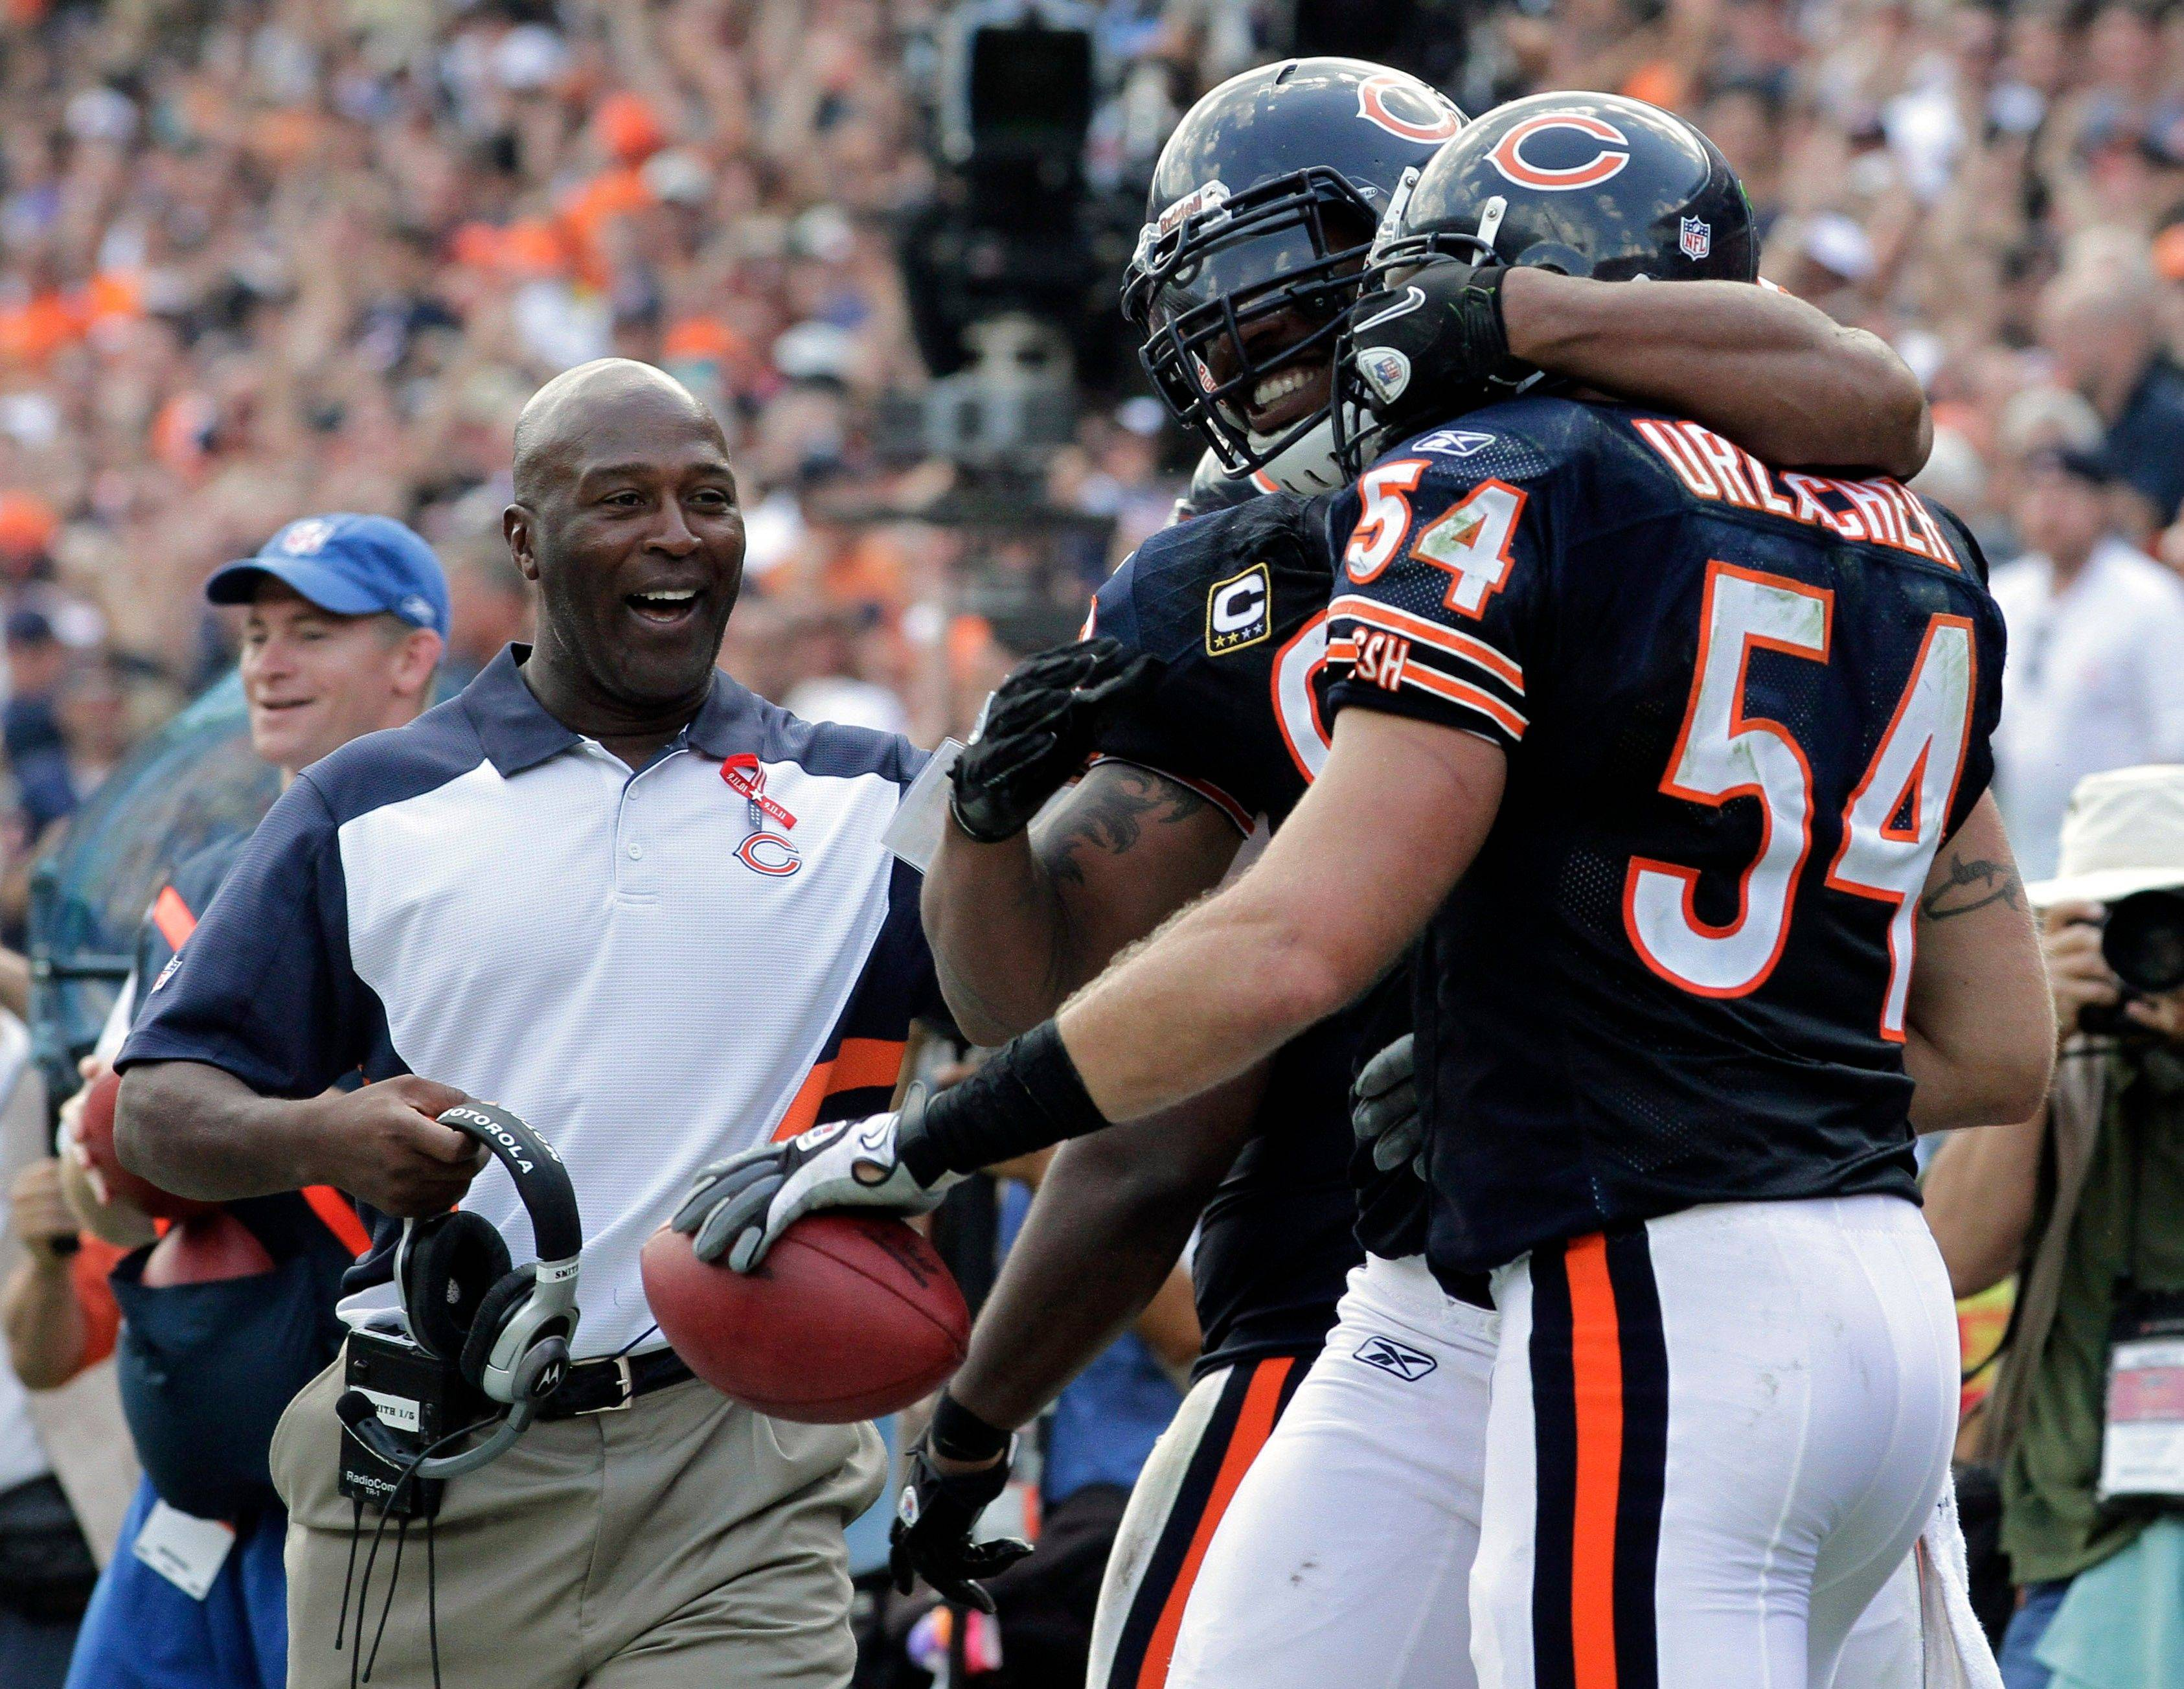 Bears linebacker Brian Urlacher (54) celebrates his fumble recovery and touchdown with teammate Julius Peppers and head coach Lovie Smith, left, in the second half of an NFL football game against the Atlanta Falcons in Chicago, Sunday, Sept. 11, 2011.